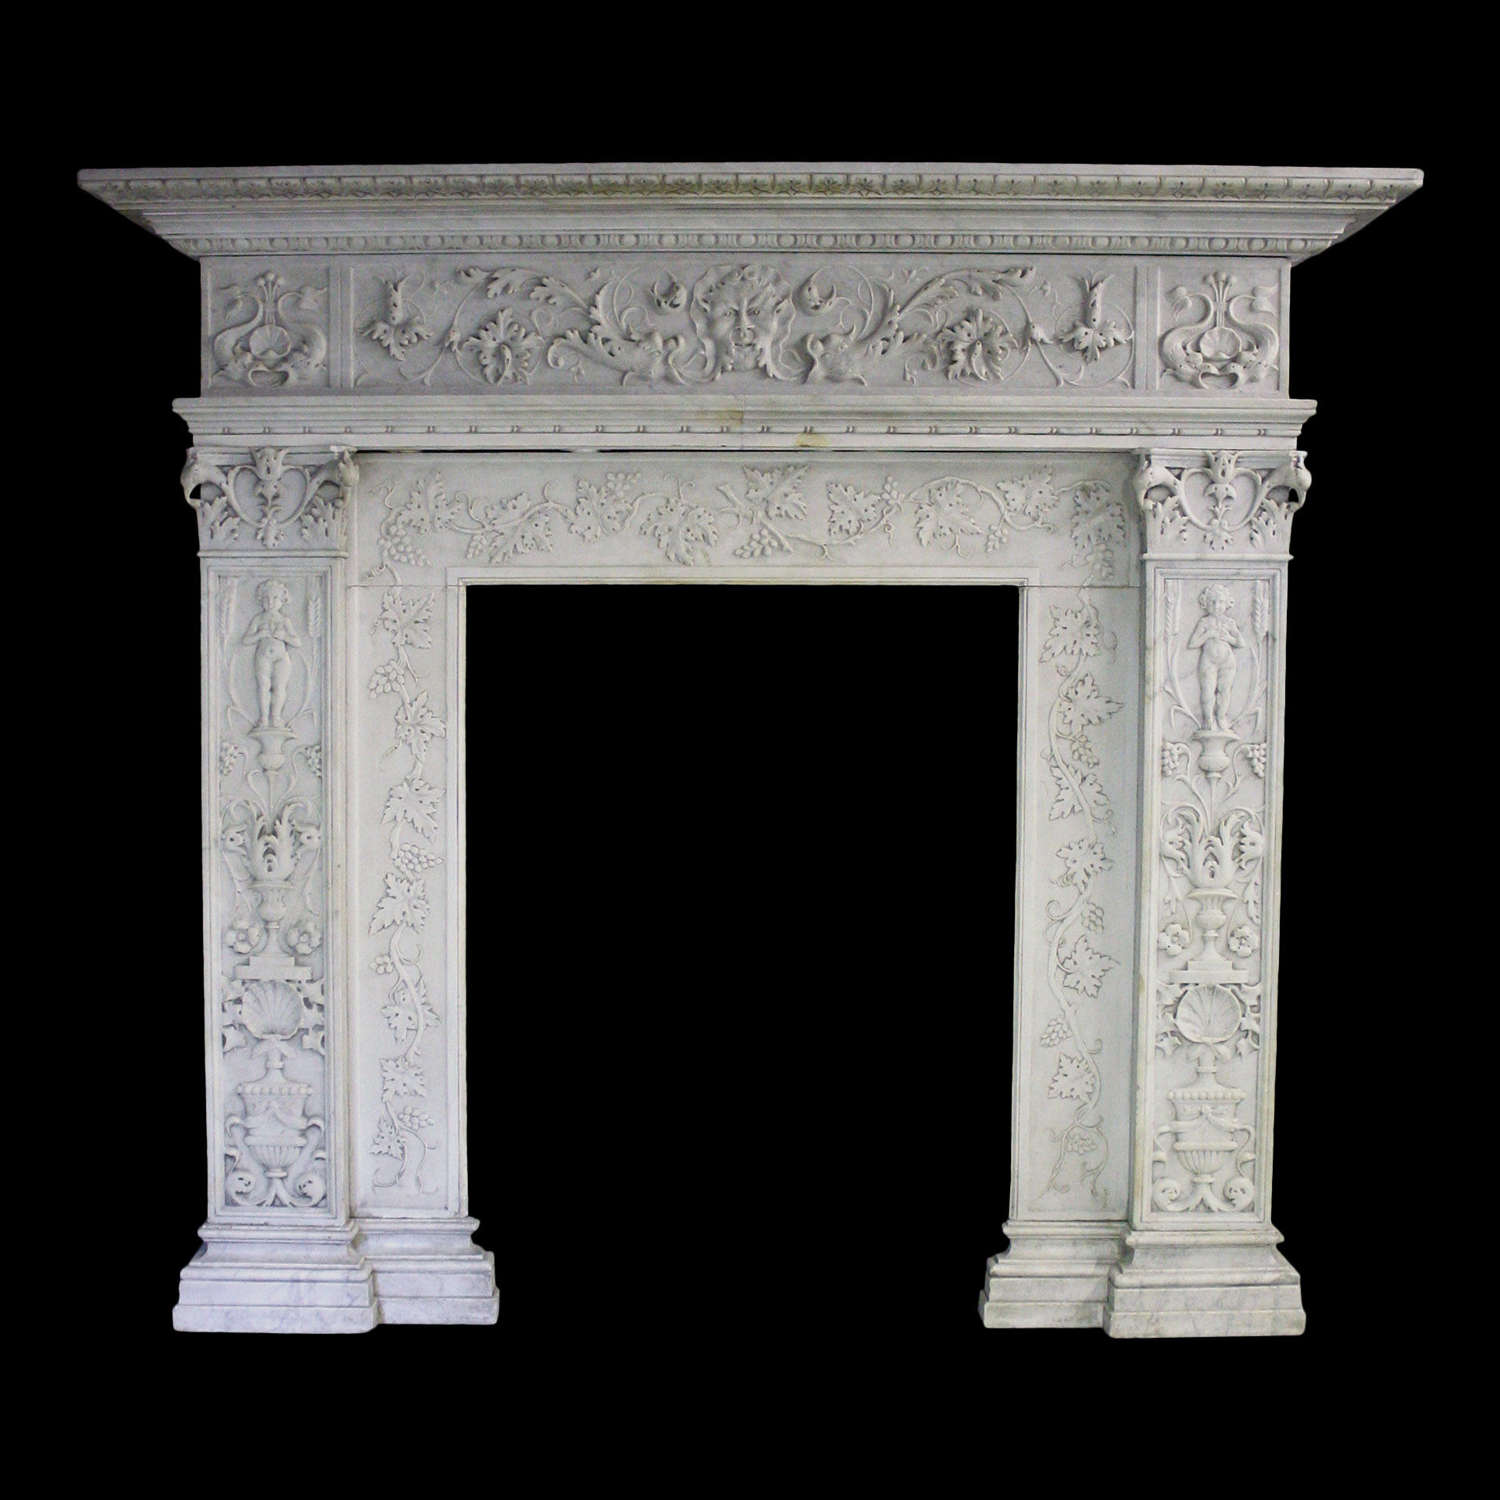 19TH CENTURY ITALIAN CARVED CARRARA MARBLE CHIMNEYPIECE